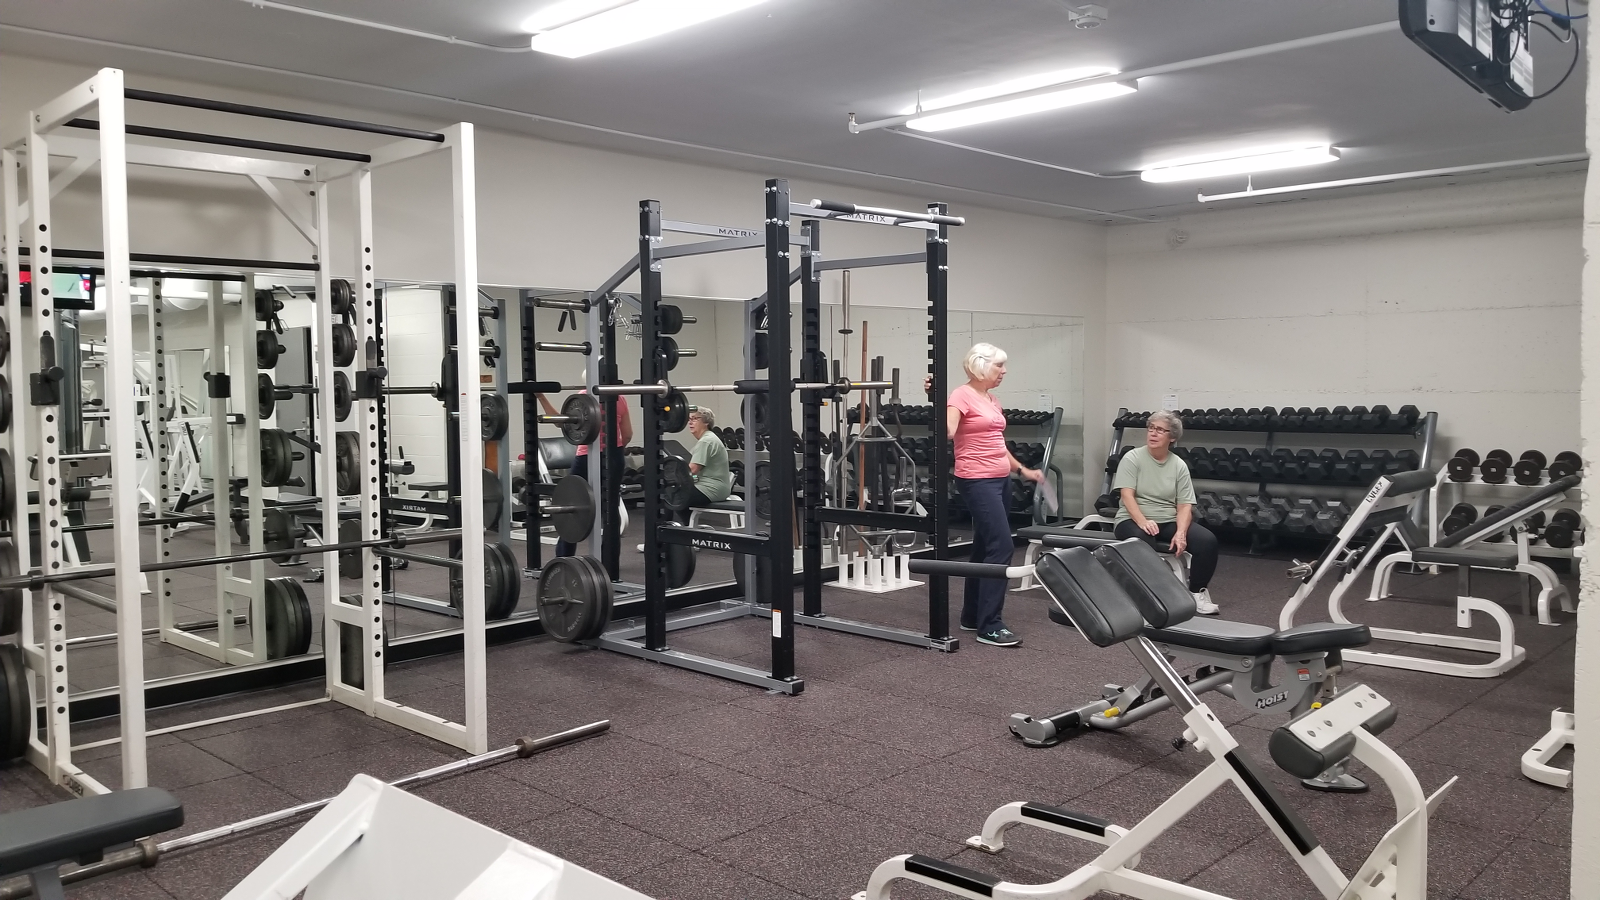 Strength Room with strength training machines and free weights.